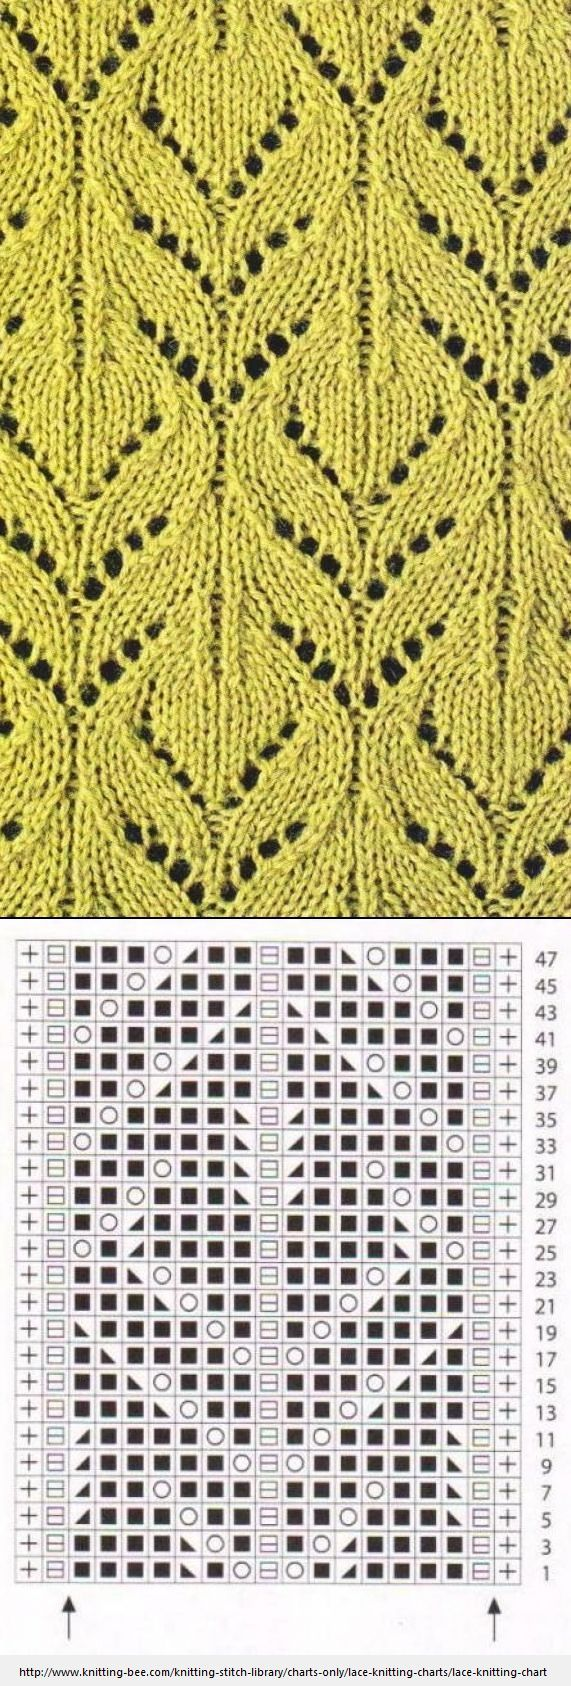 Knitting Chart Patterns : 25+ best ideas about Lace knitting patterns on Pinterest Lace knitting, Lac...